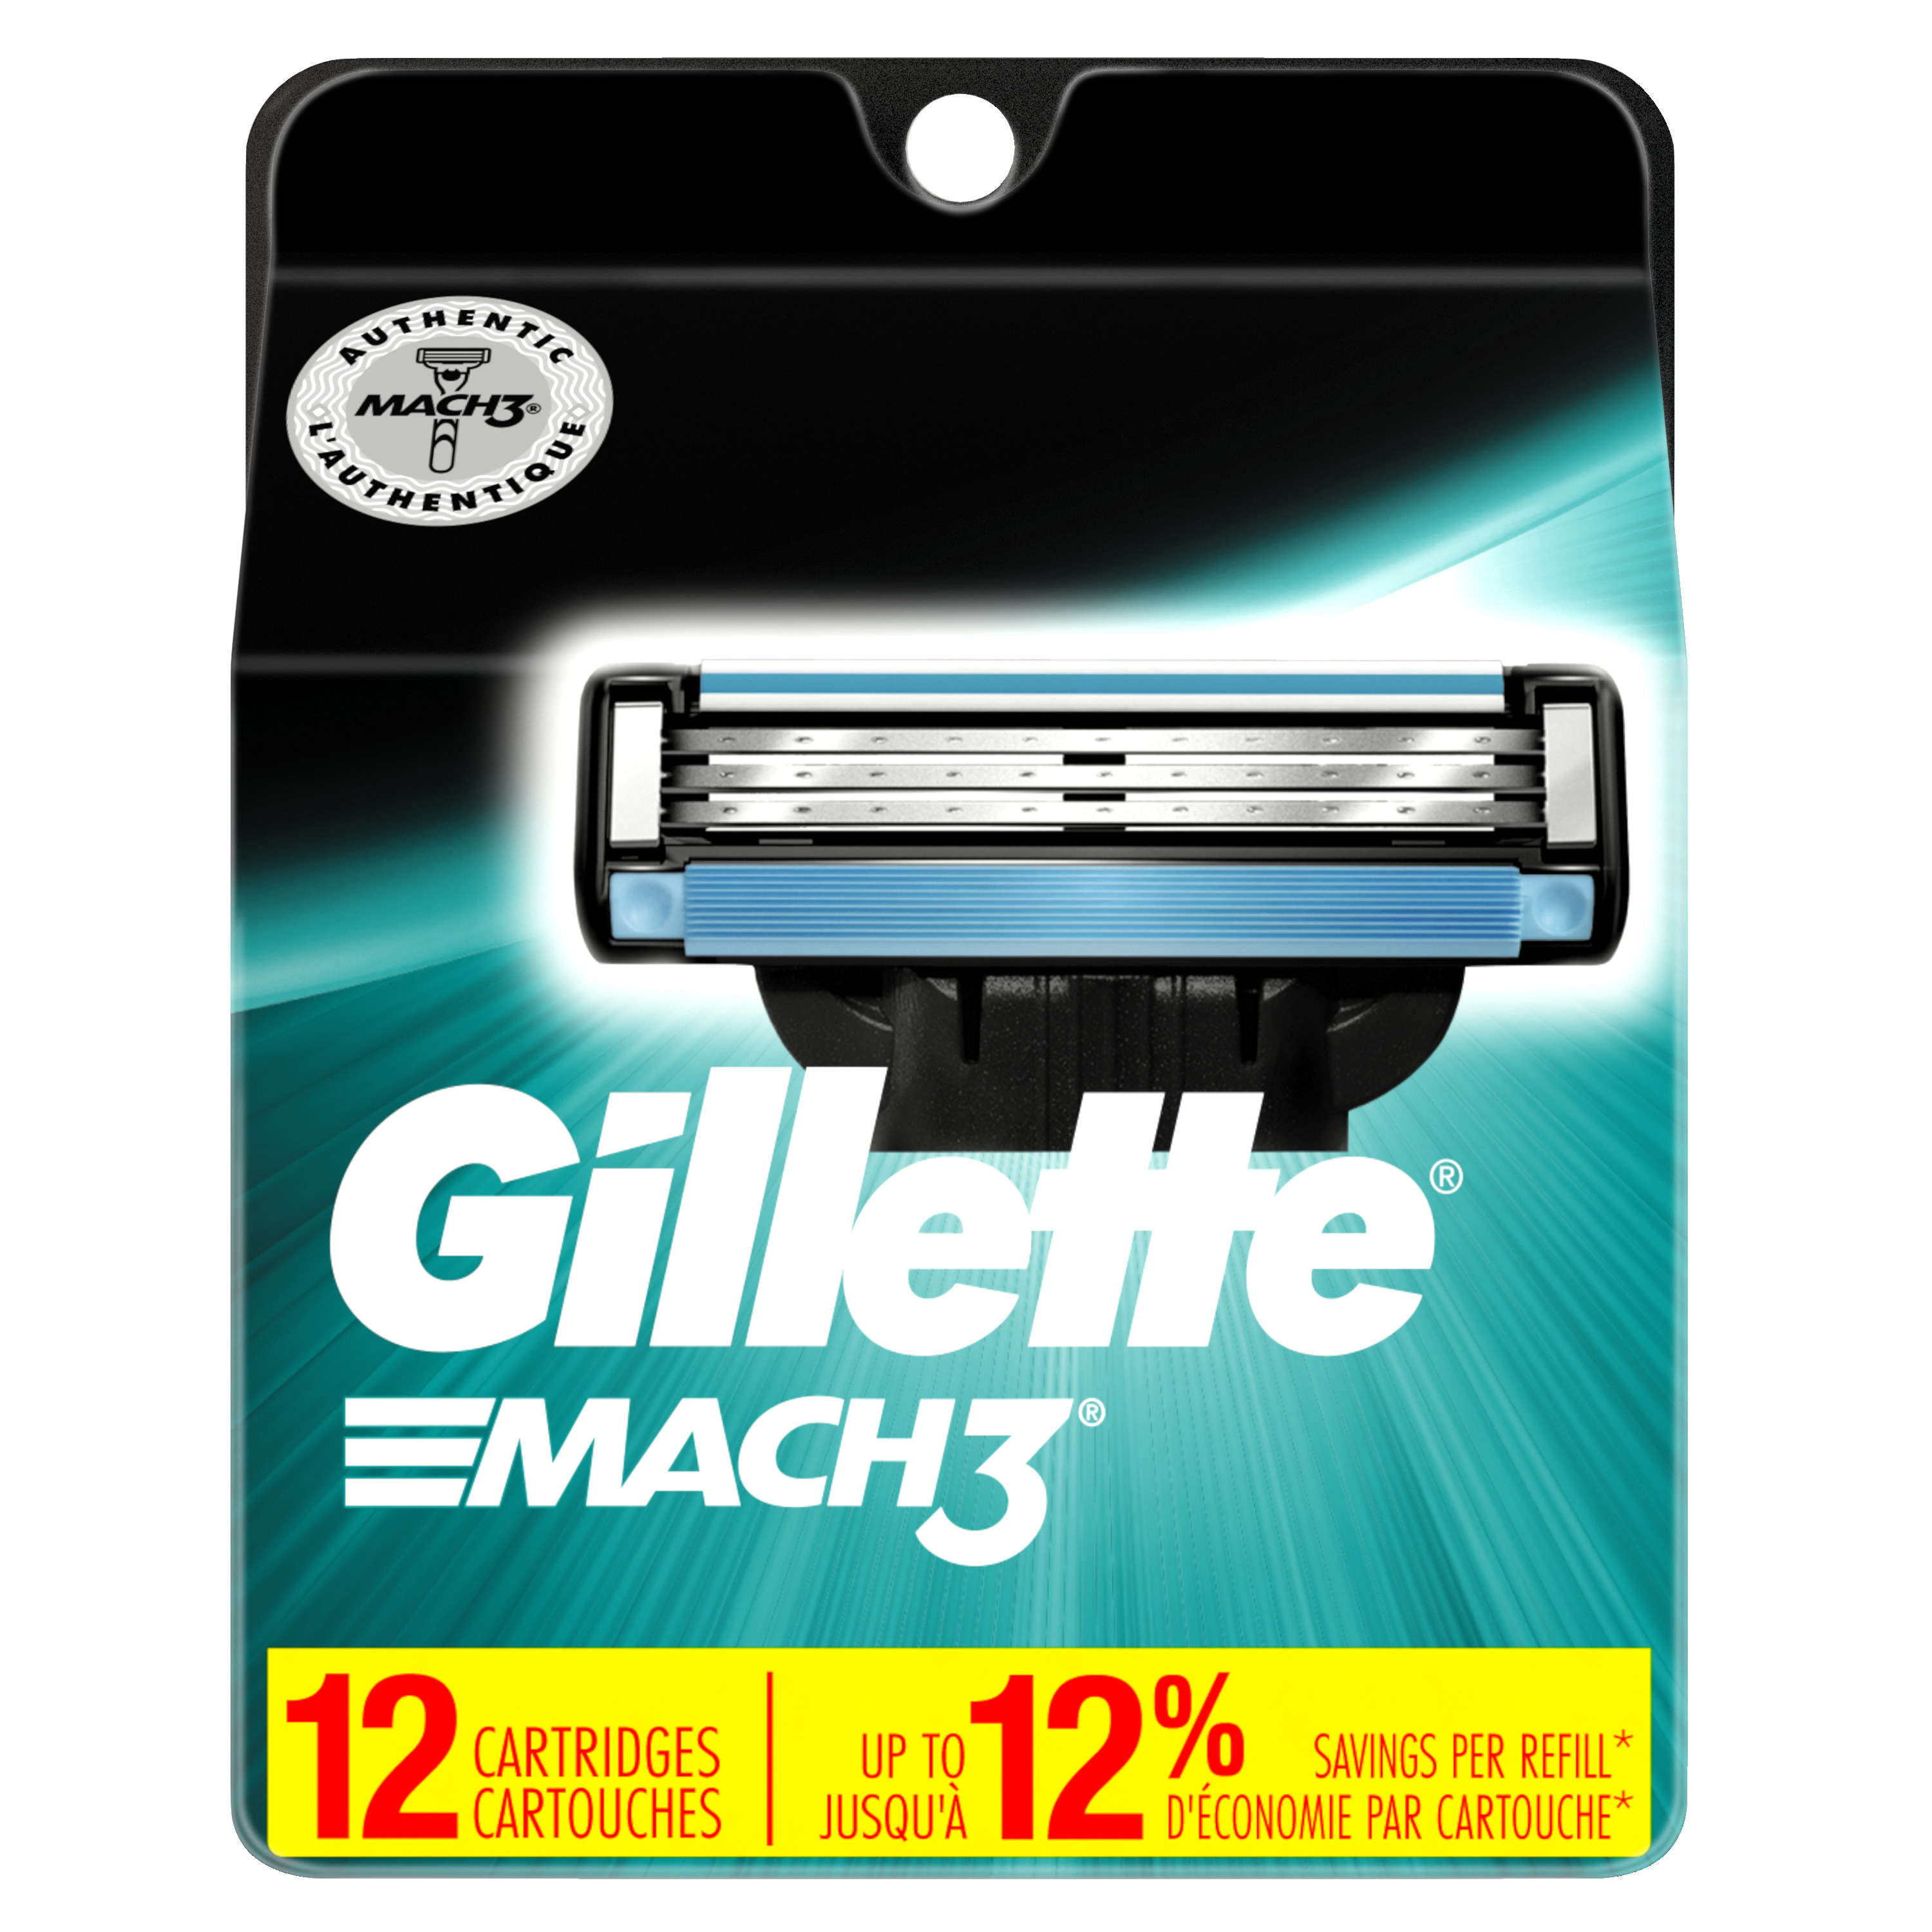 Gillette Mach3 Cartridge, 12ct